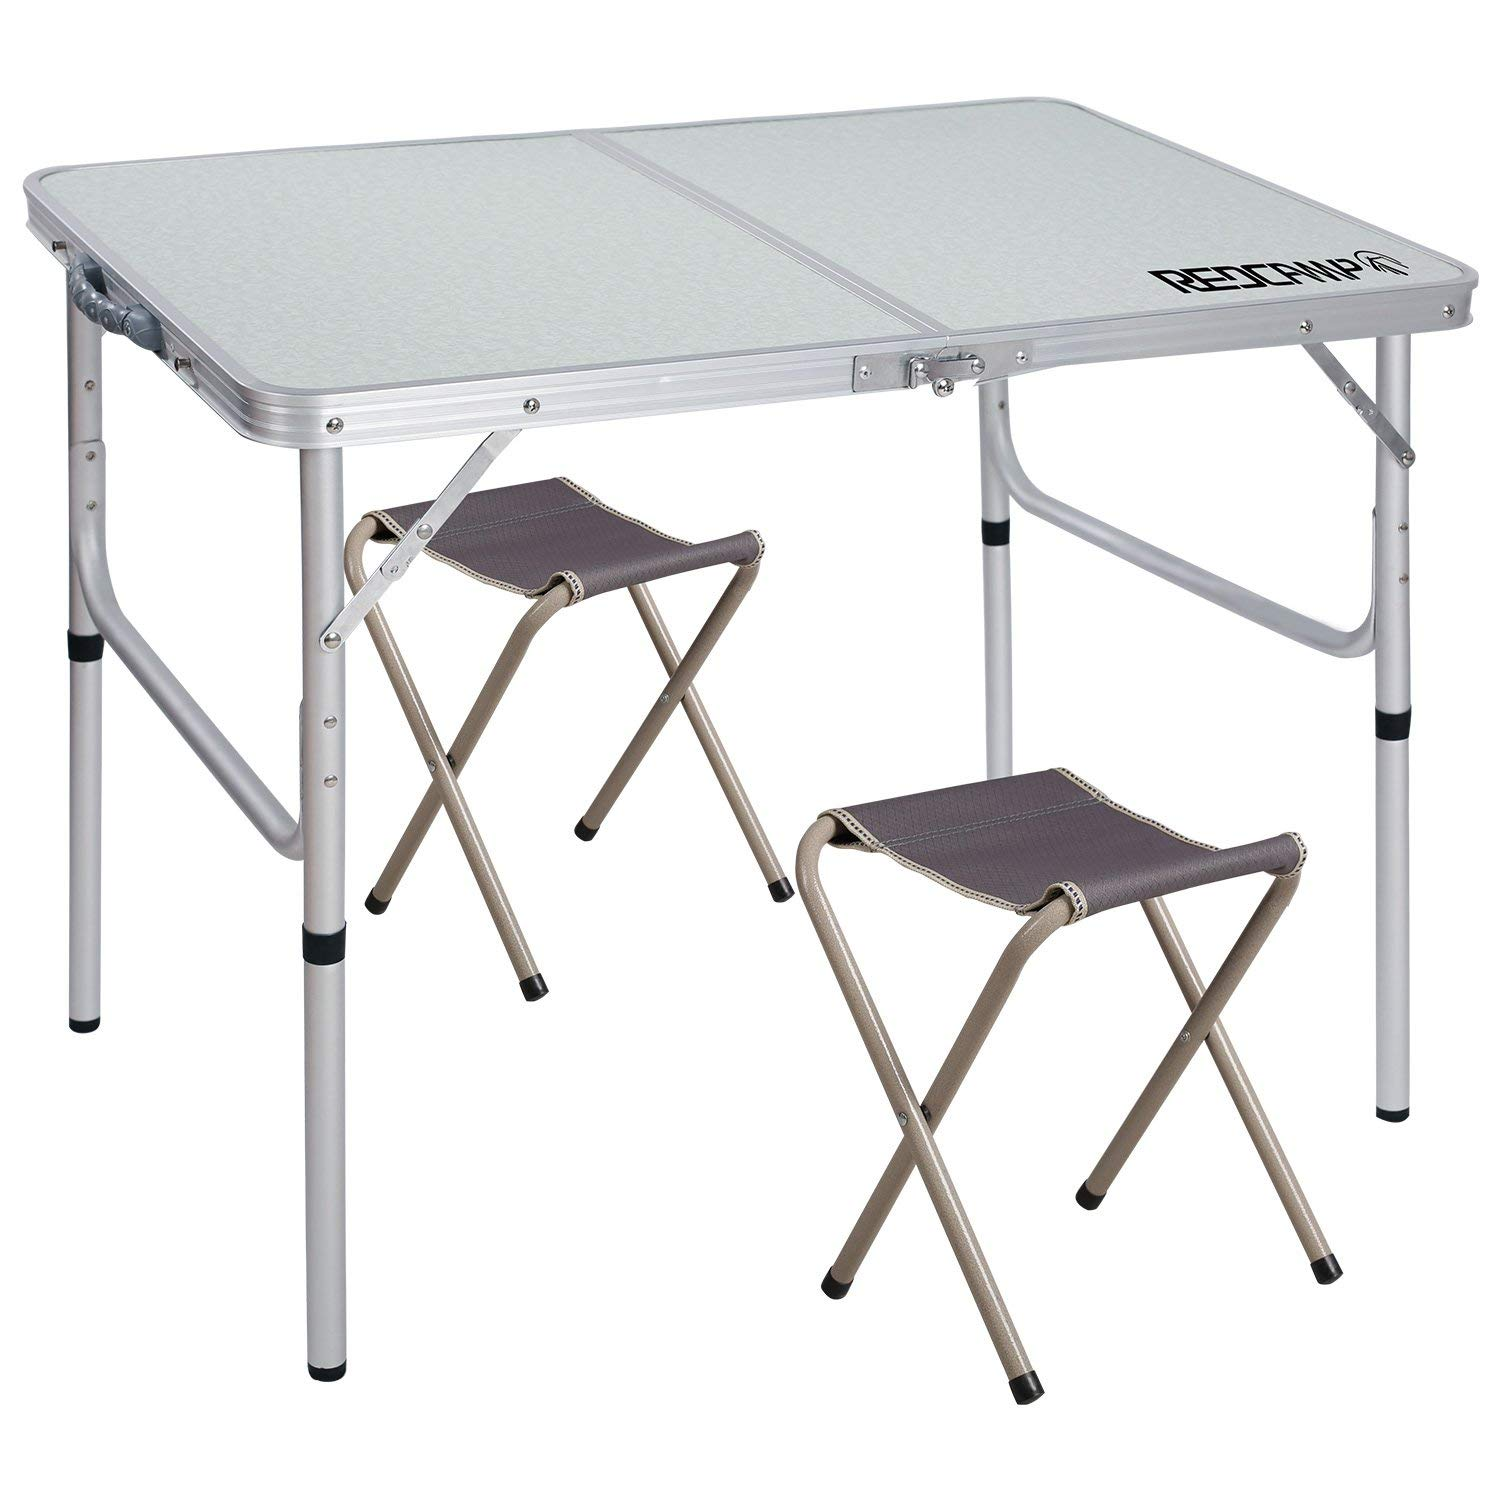 REDCAMP Folding Camping Table Adjustable, Portable Picnic Table with 2 Chairs, Aluminum White 35.4''x23.6''x15''/27.6'' by REDCAMP